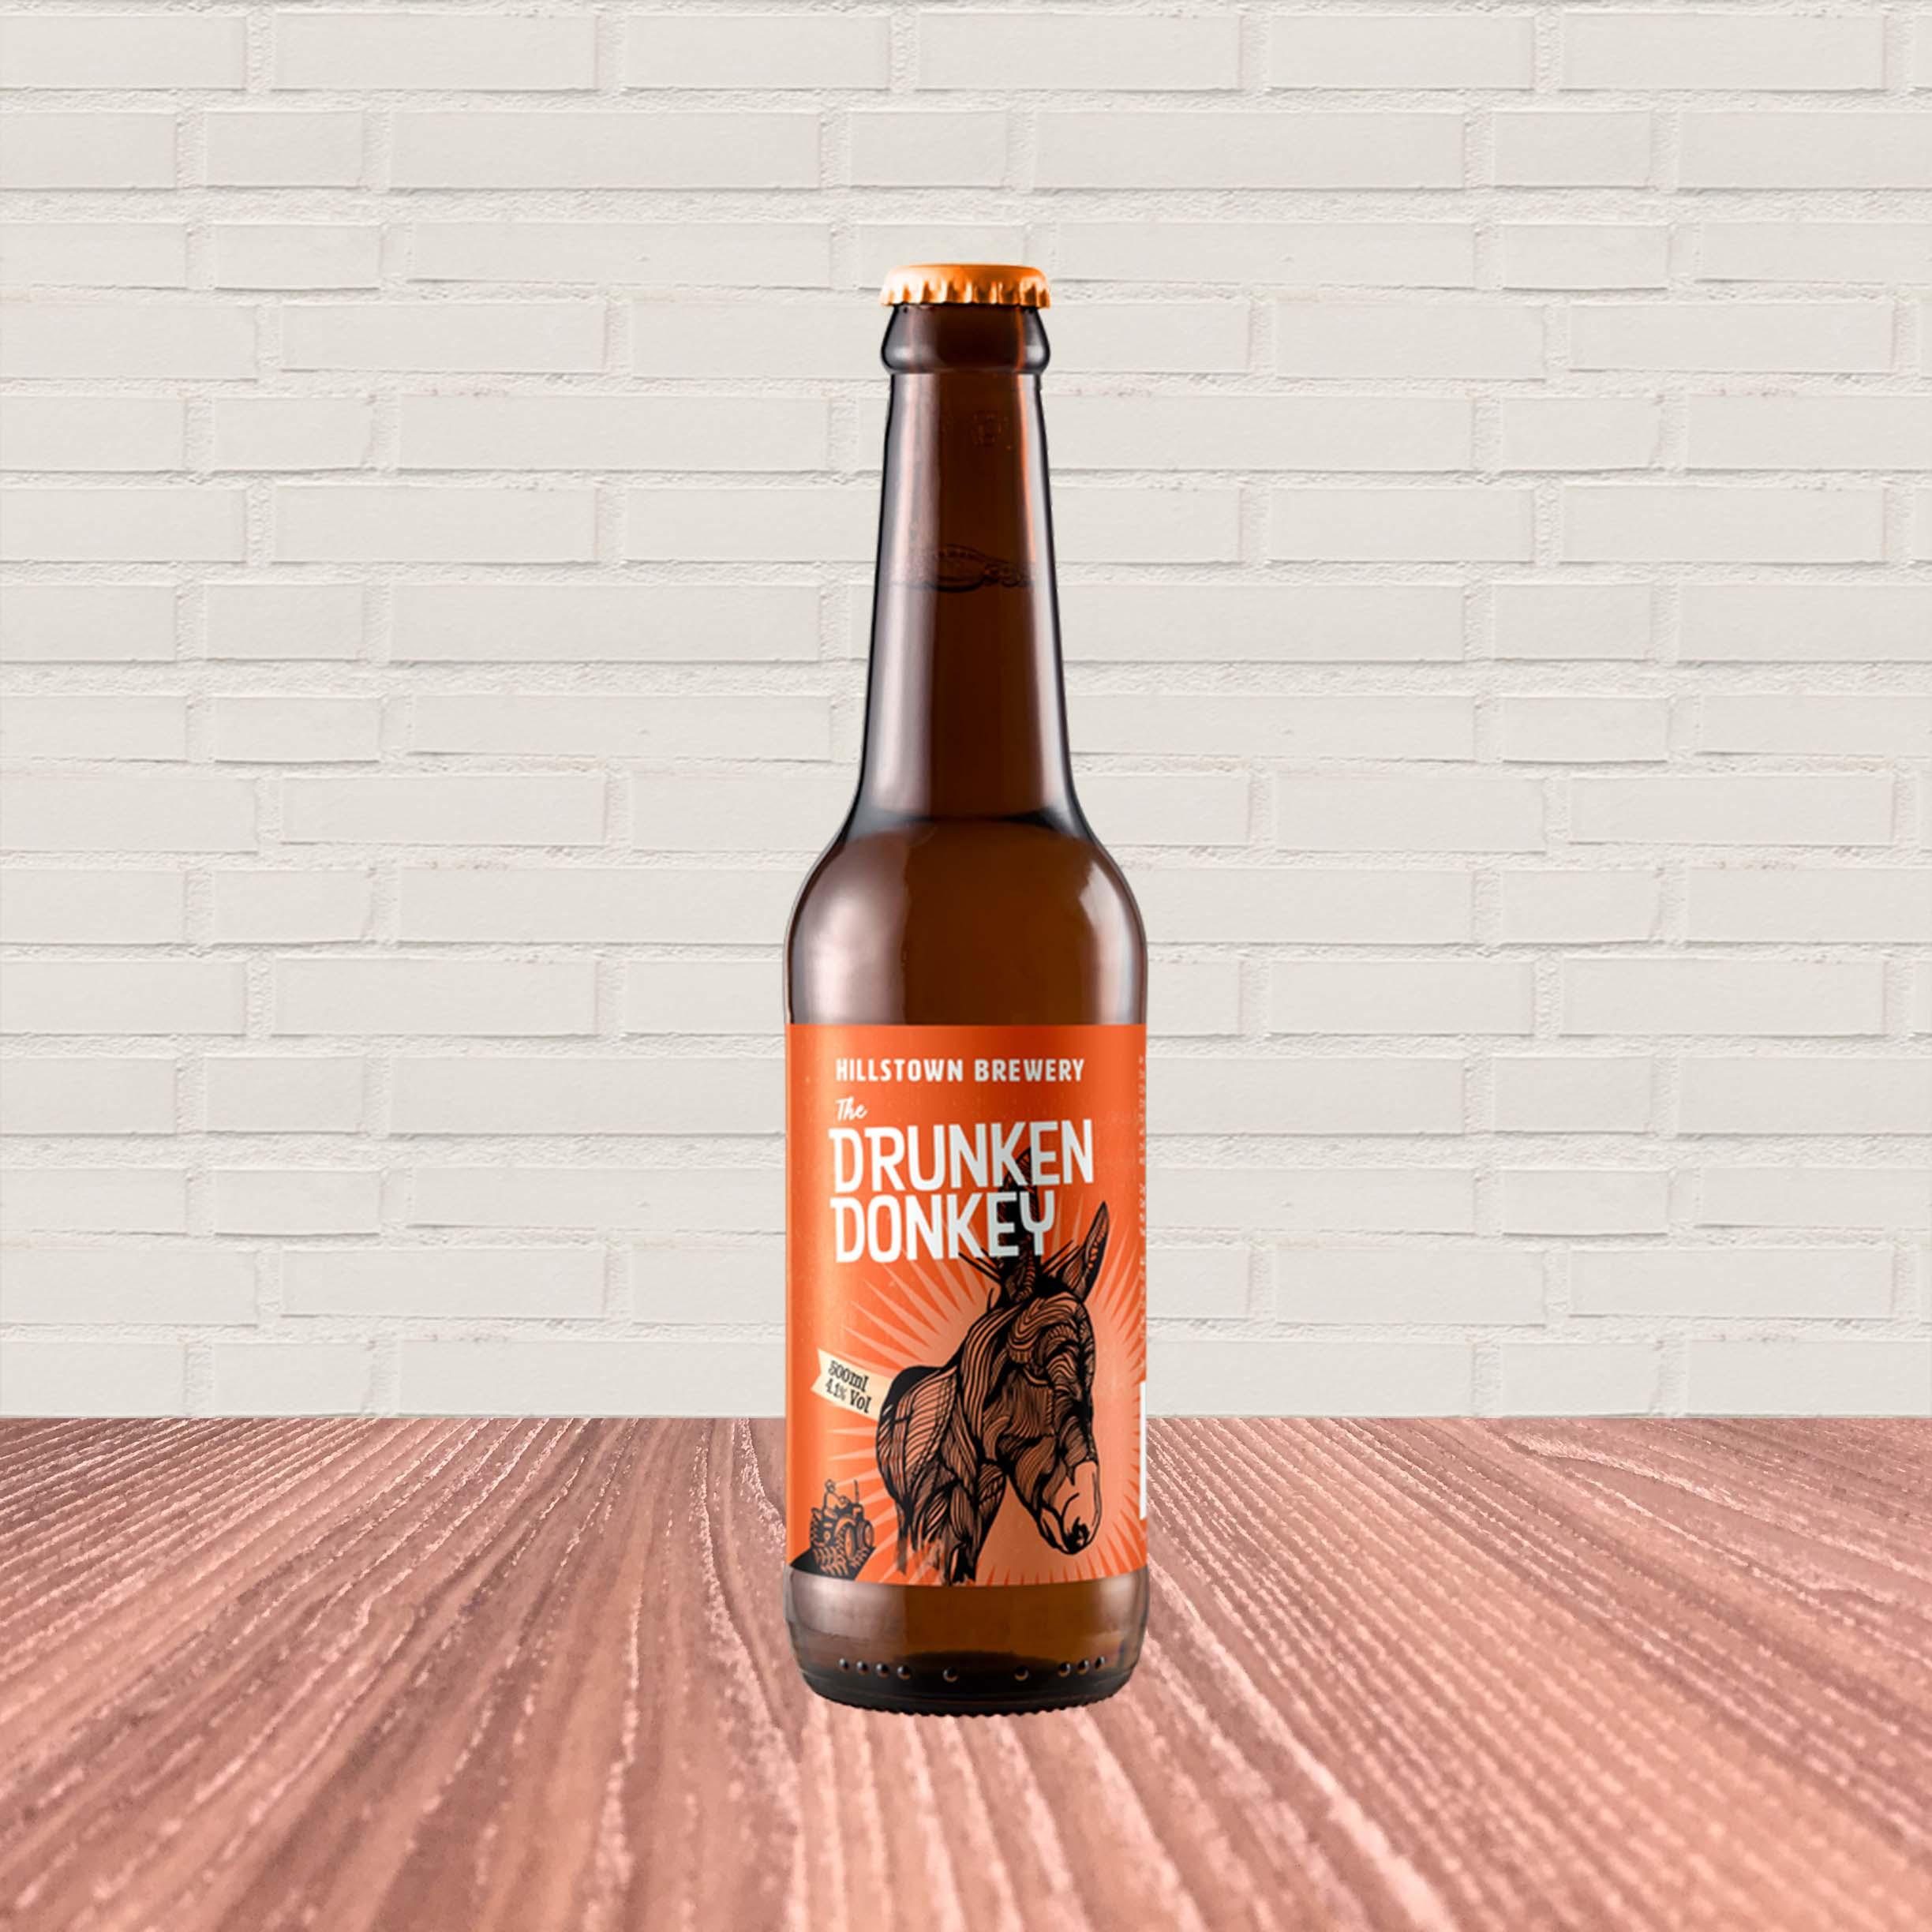 Drunken Donkey Lager by Hillstown